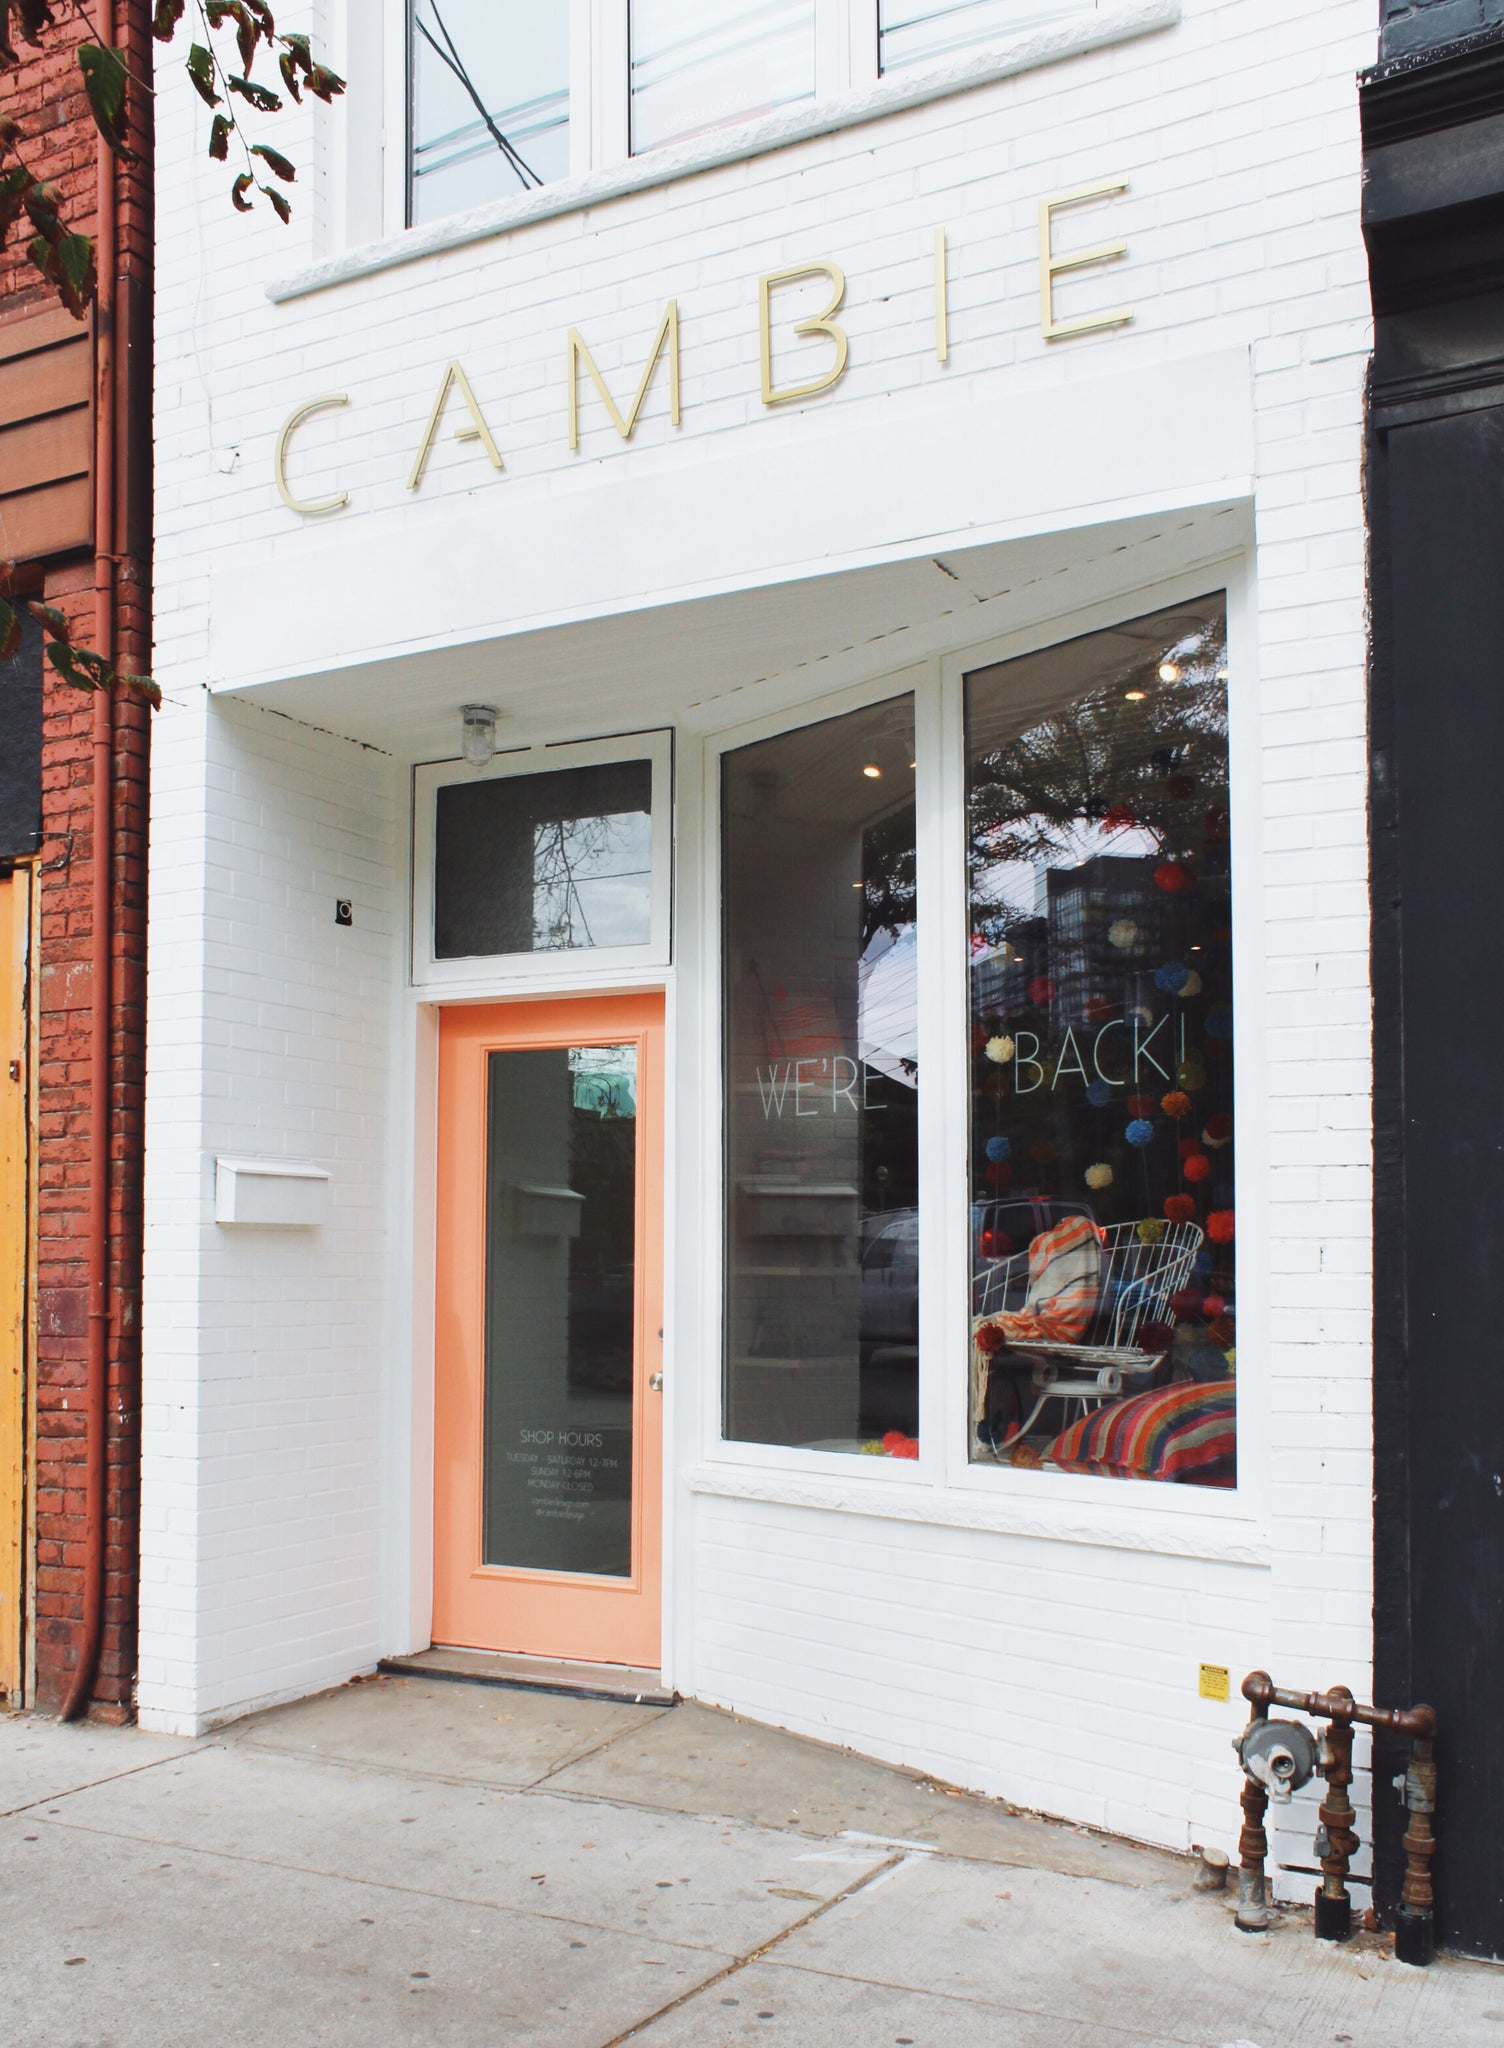 Cambie Design at 1048 Queen Street West